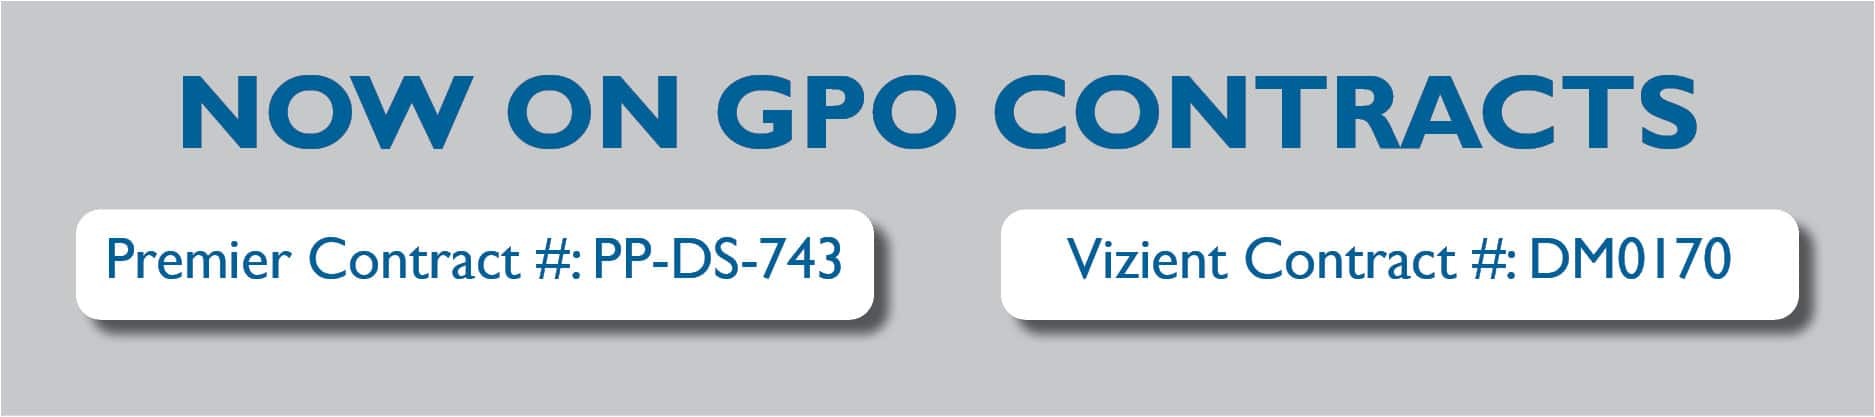 Solutions in Critical Care SCC products on GPO contracts Vizient and Premier